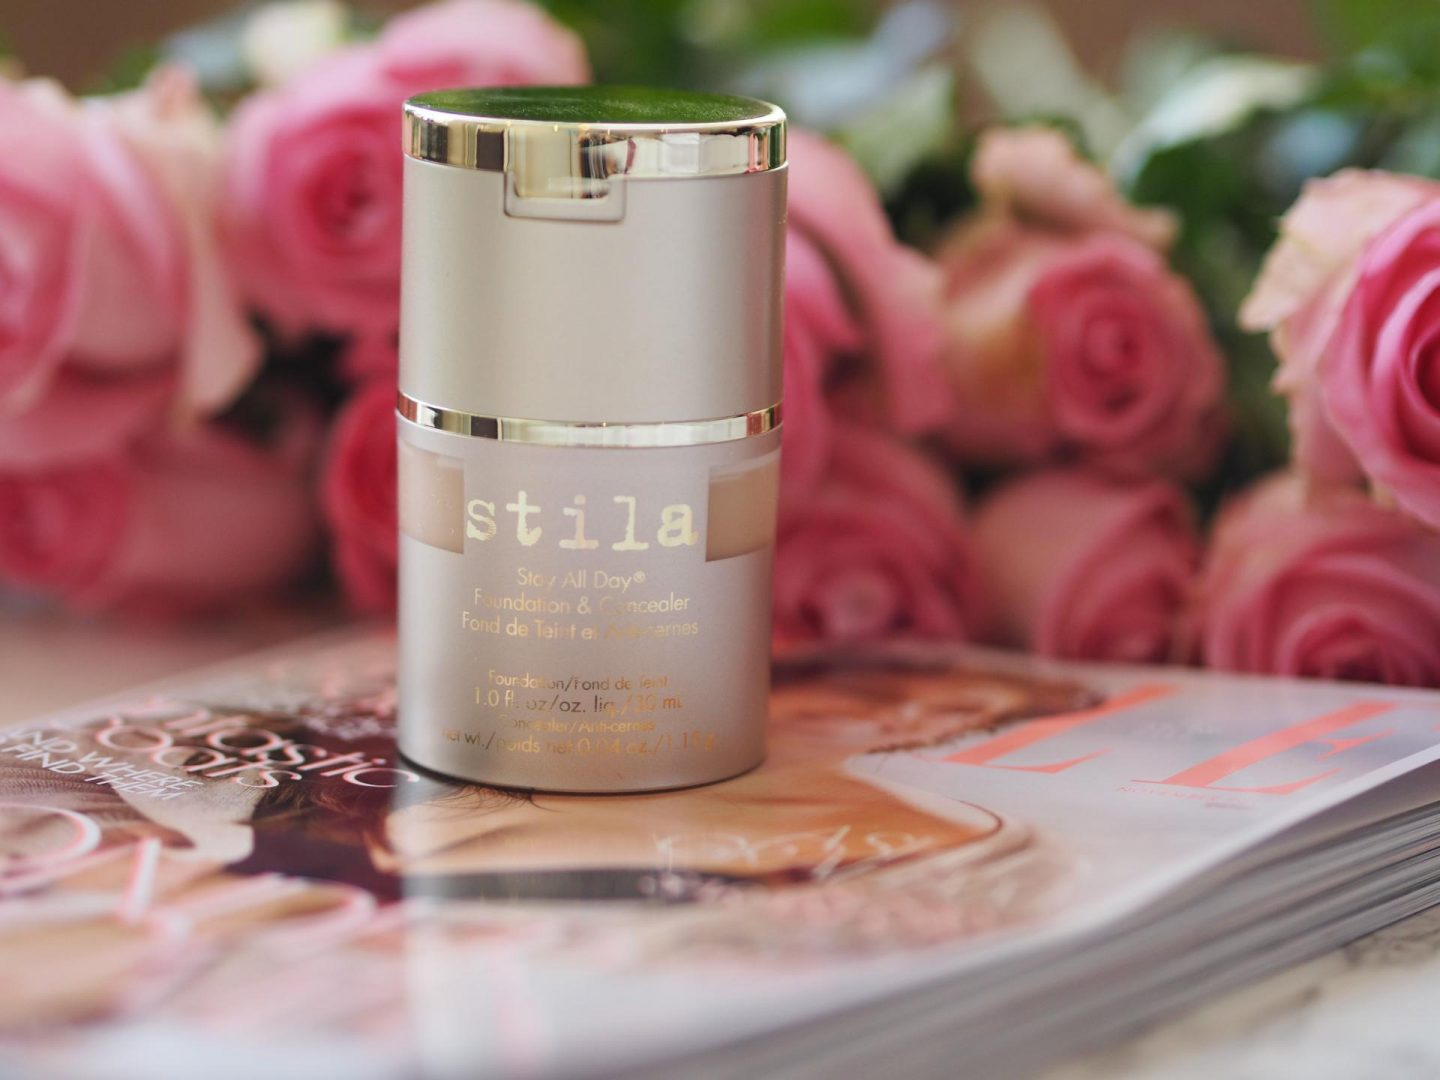 Stila Stay All Day Foundation and Concealer – Light 3